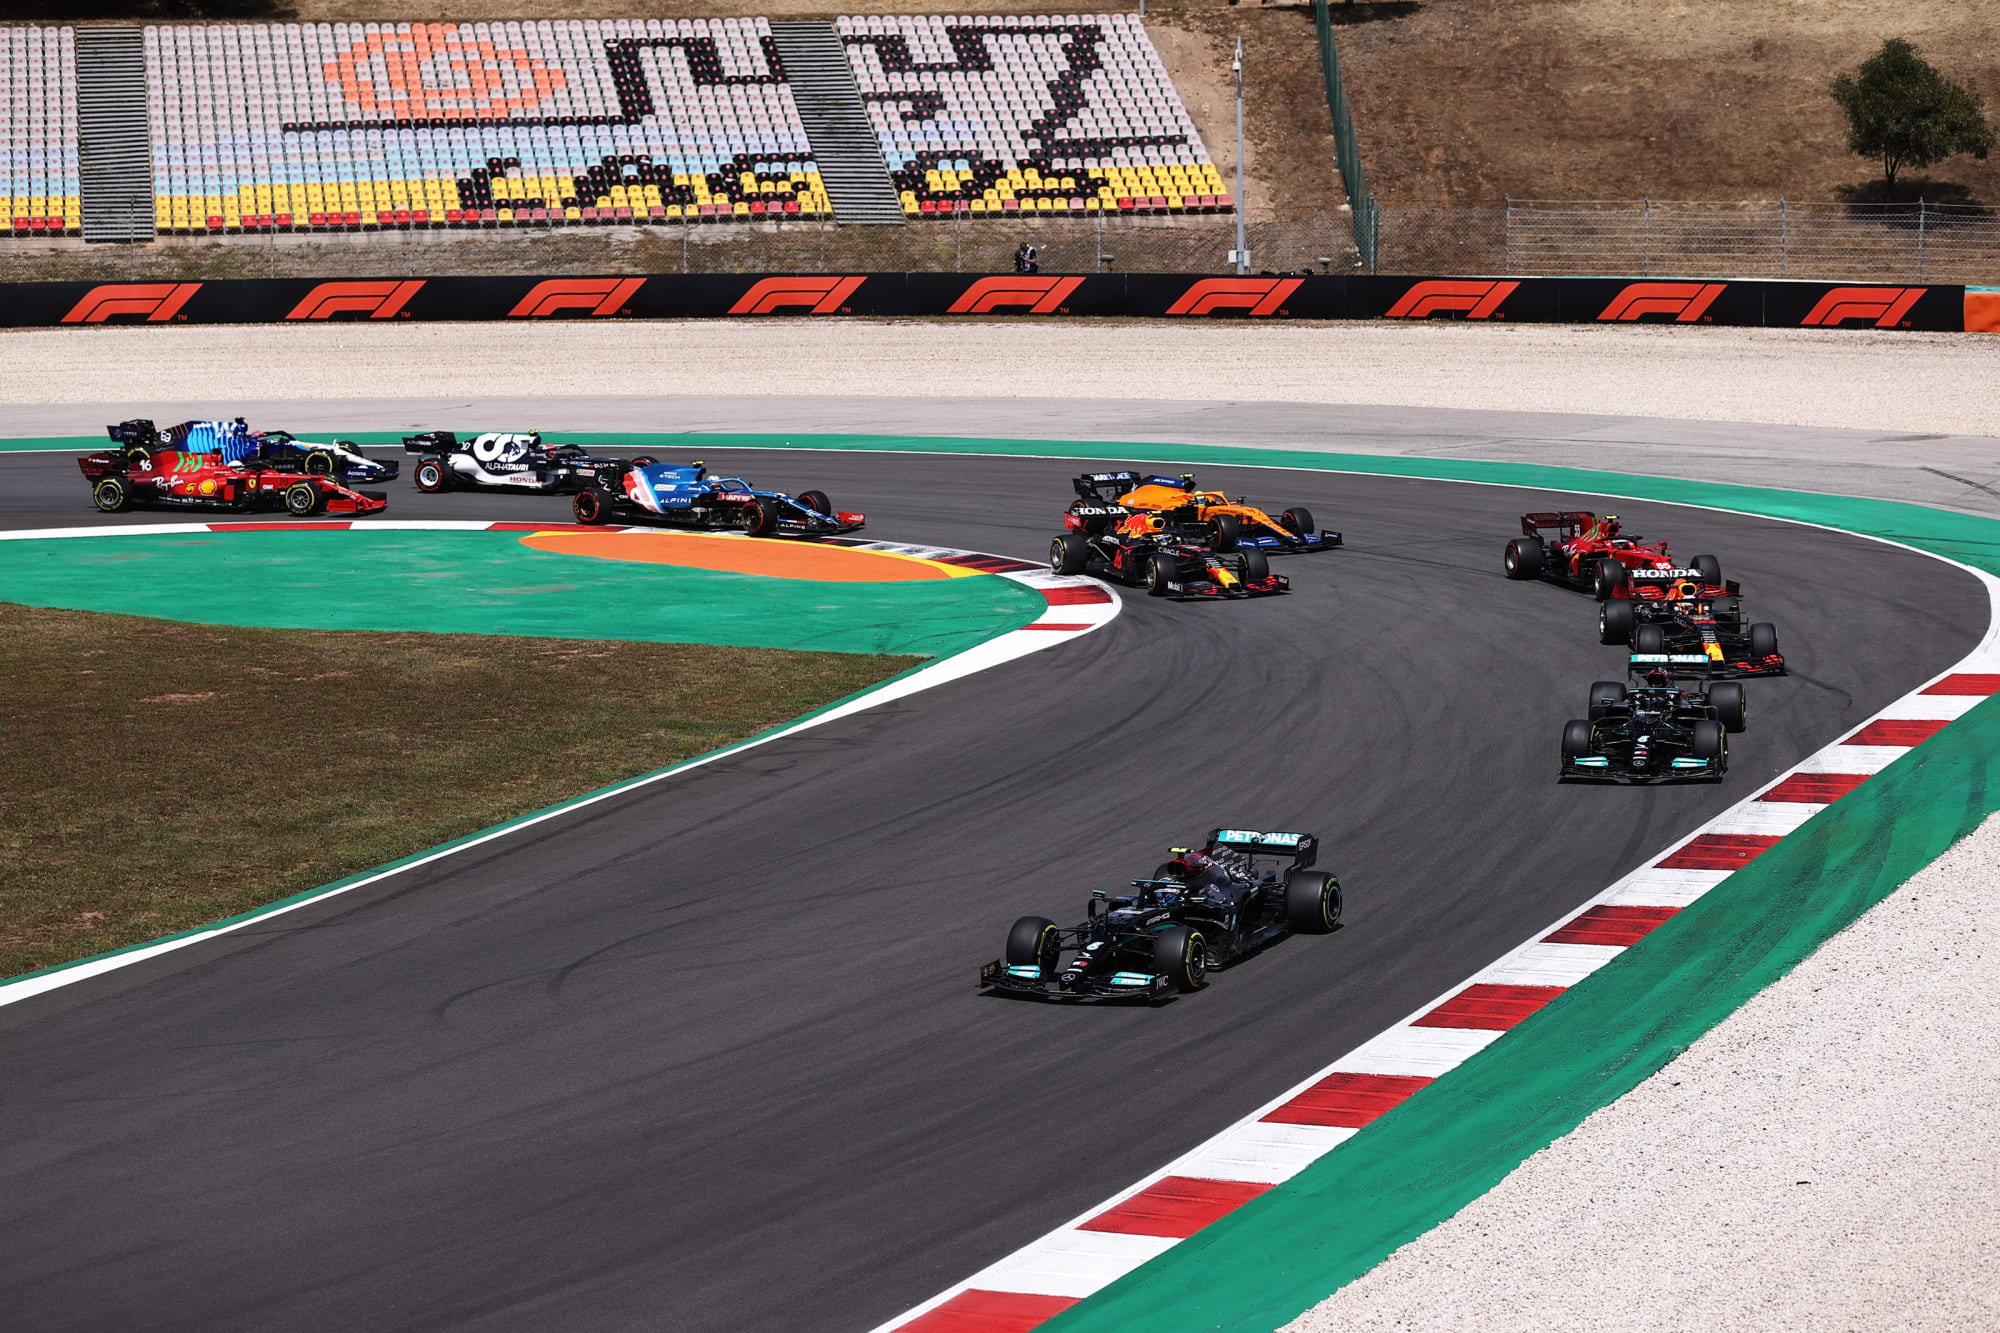 Formula 1: Very few exciting moments from dull Portimao race